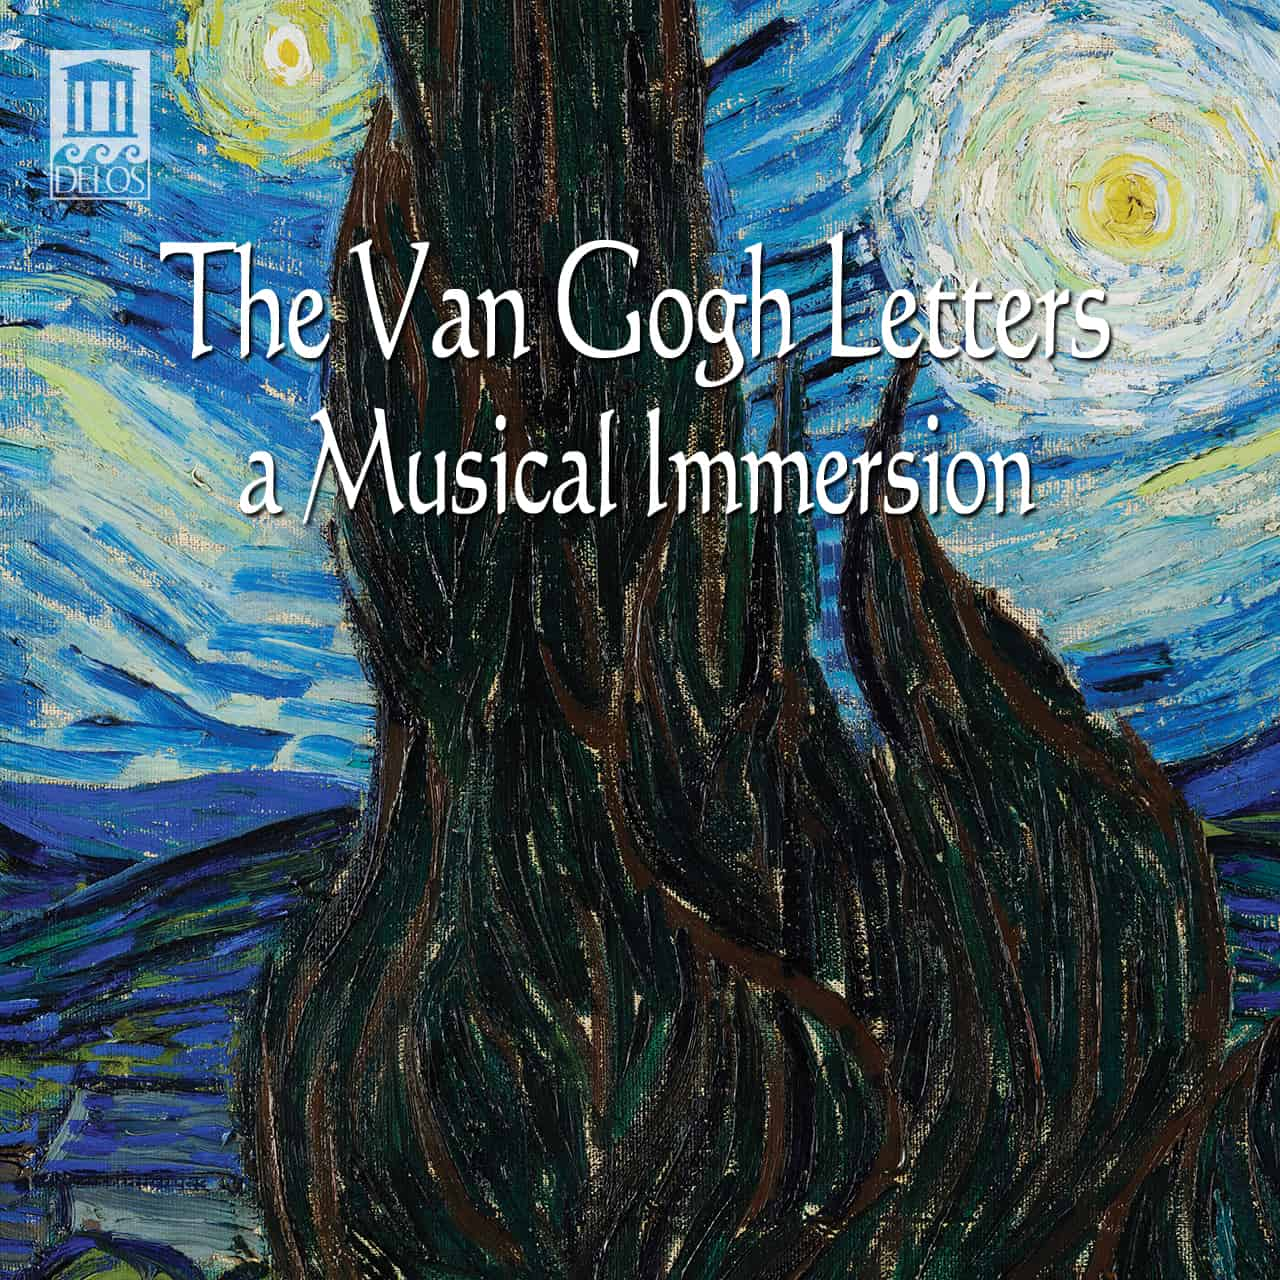 The Van Gogh Letters - A Musical Immersion